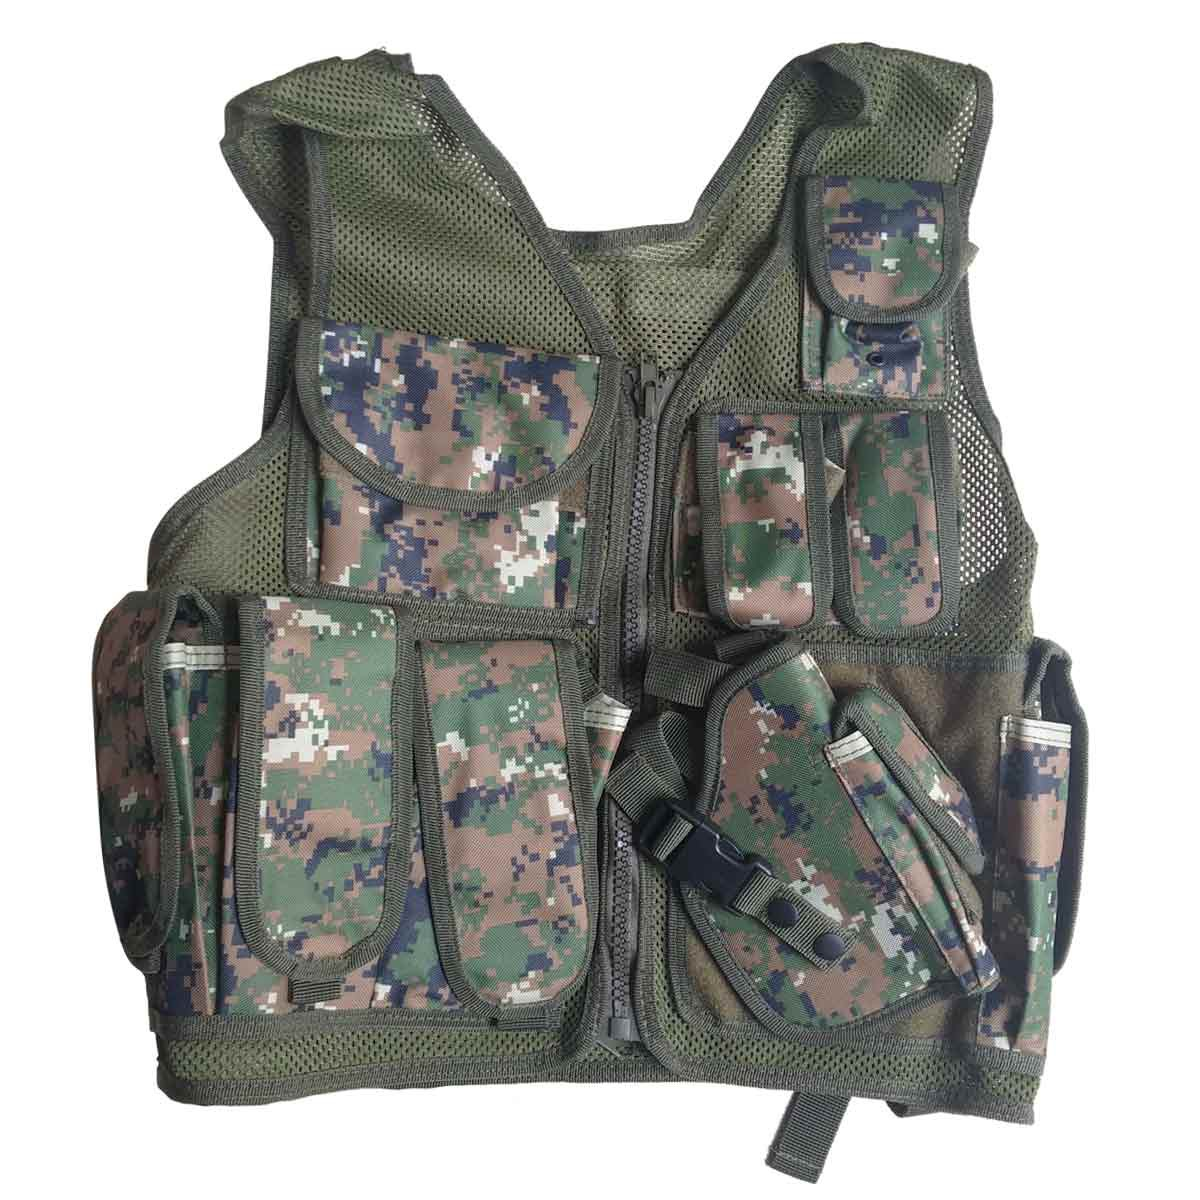 Gilet Tattico Softair Giubbotto Militare Marpat Digital Woodland